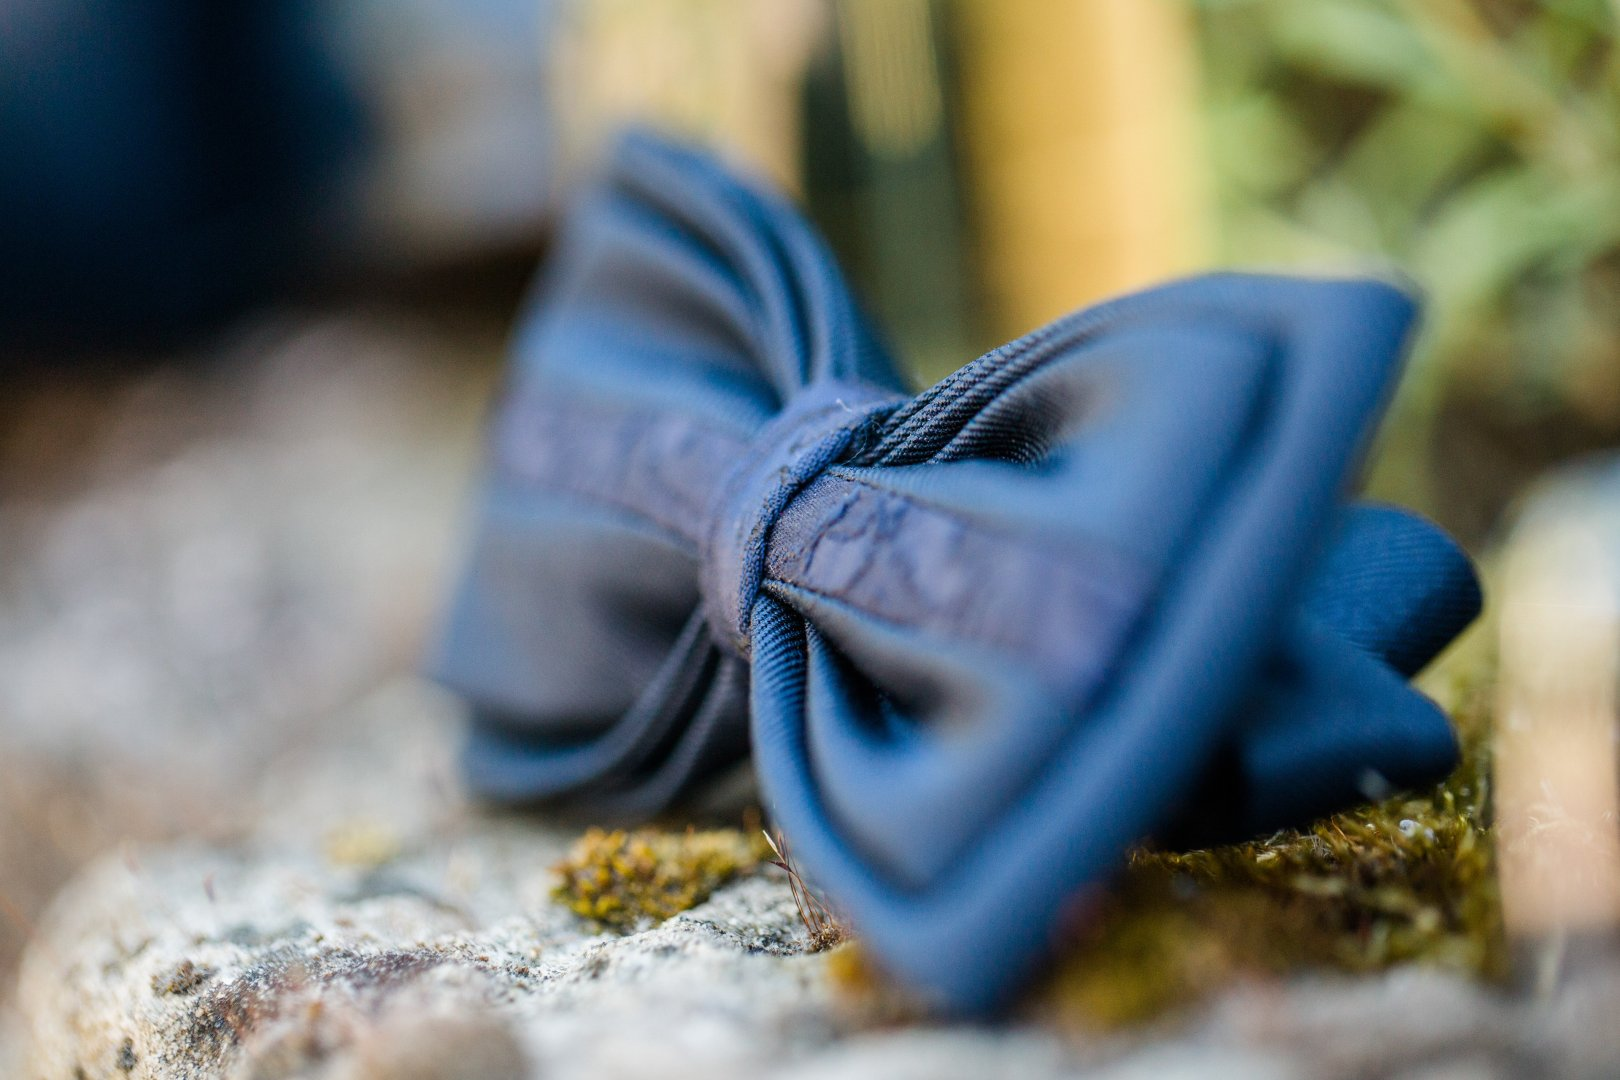 Blue Footwear Cobalt blue Shoe Electric blue Close-up Photography Hand Jeans Still life photography